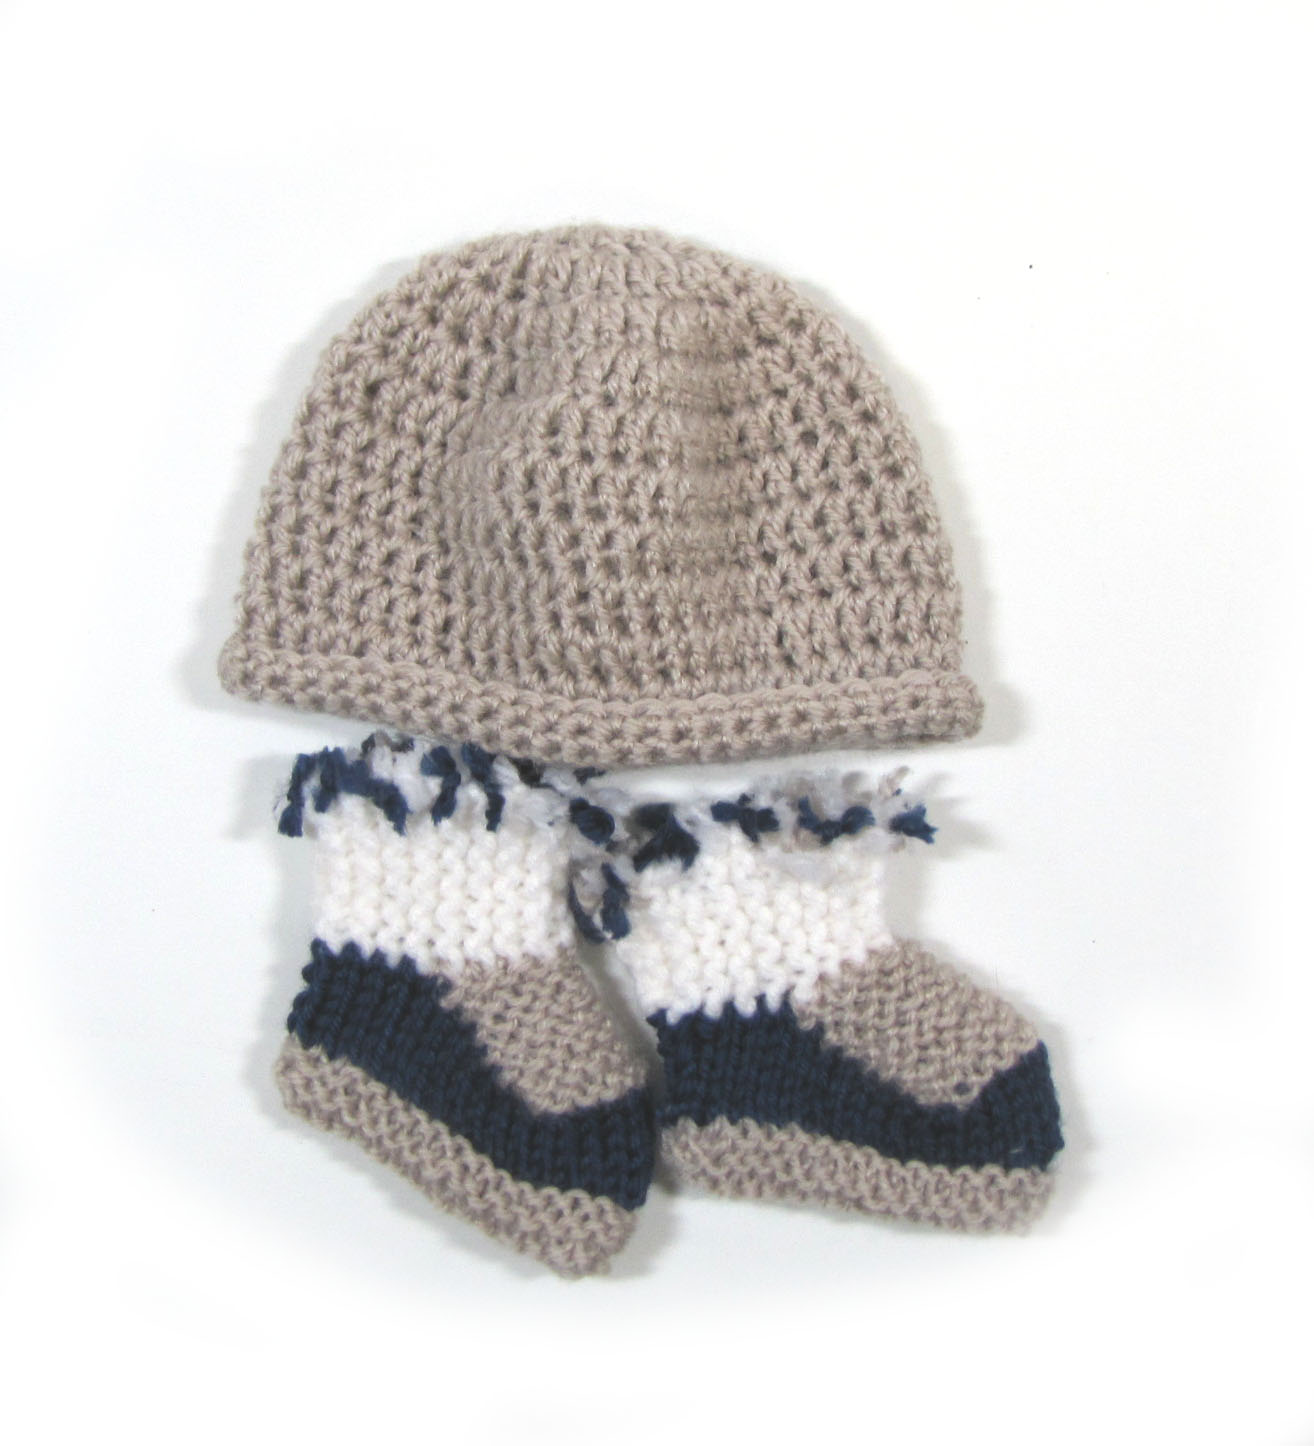 KSS Greyish Booties and Hat Set (3 Months) KSS-HA-696